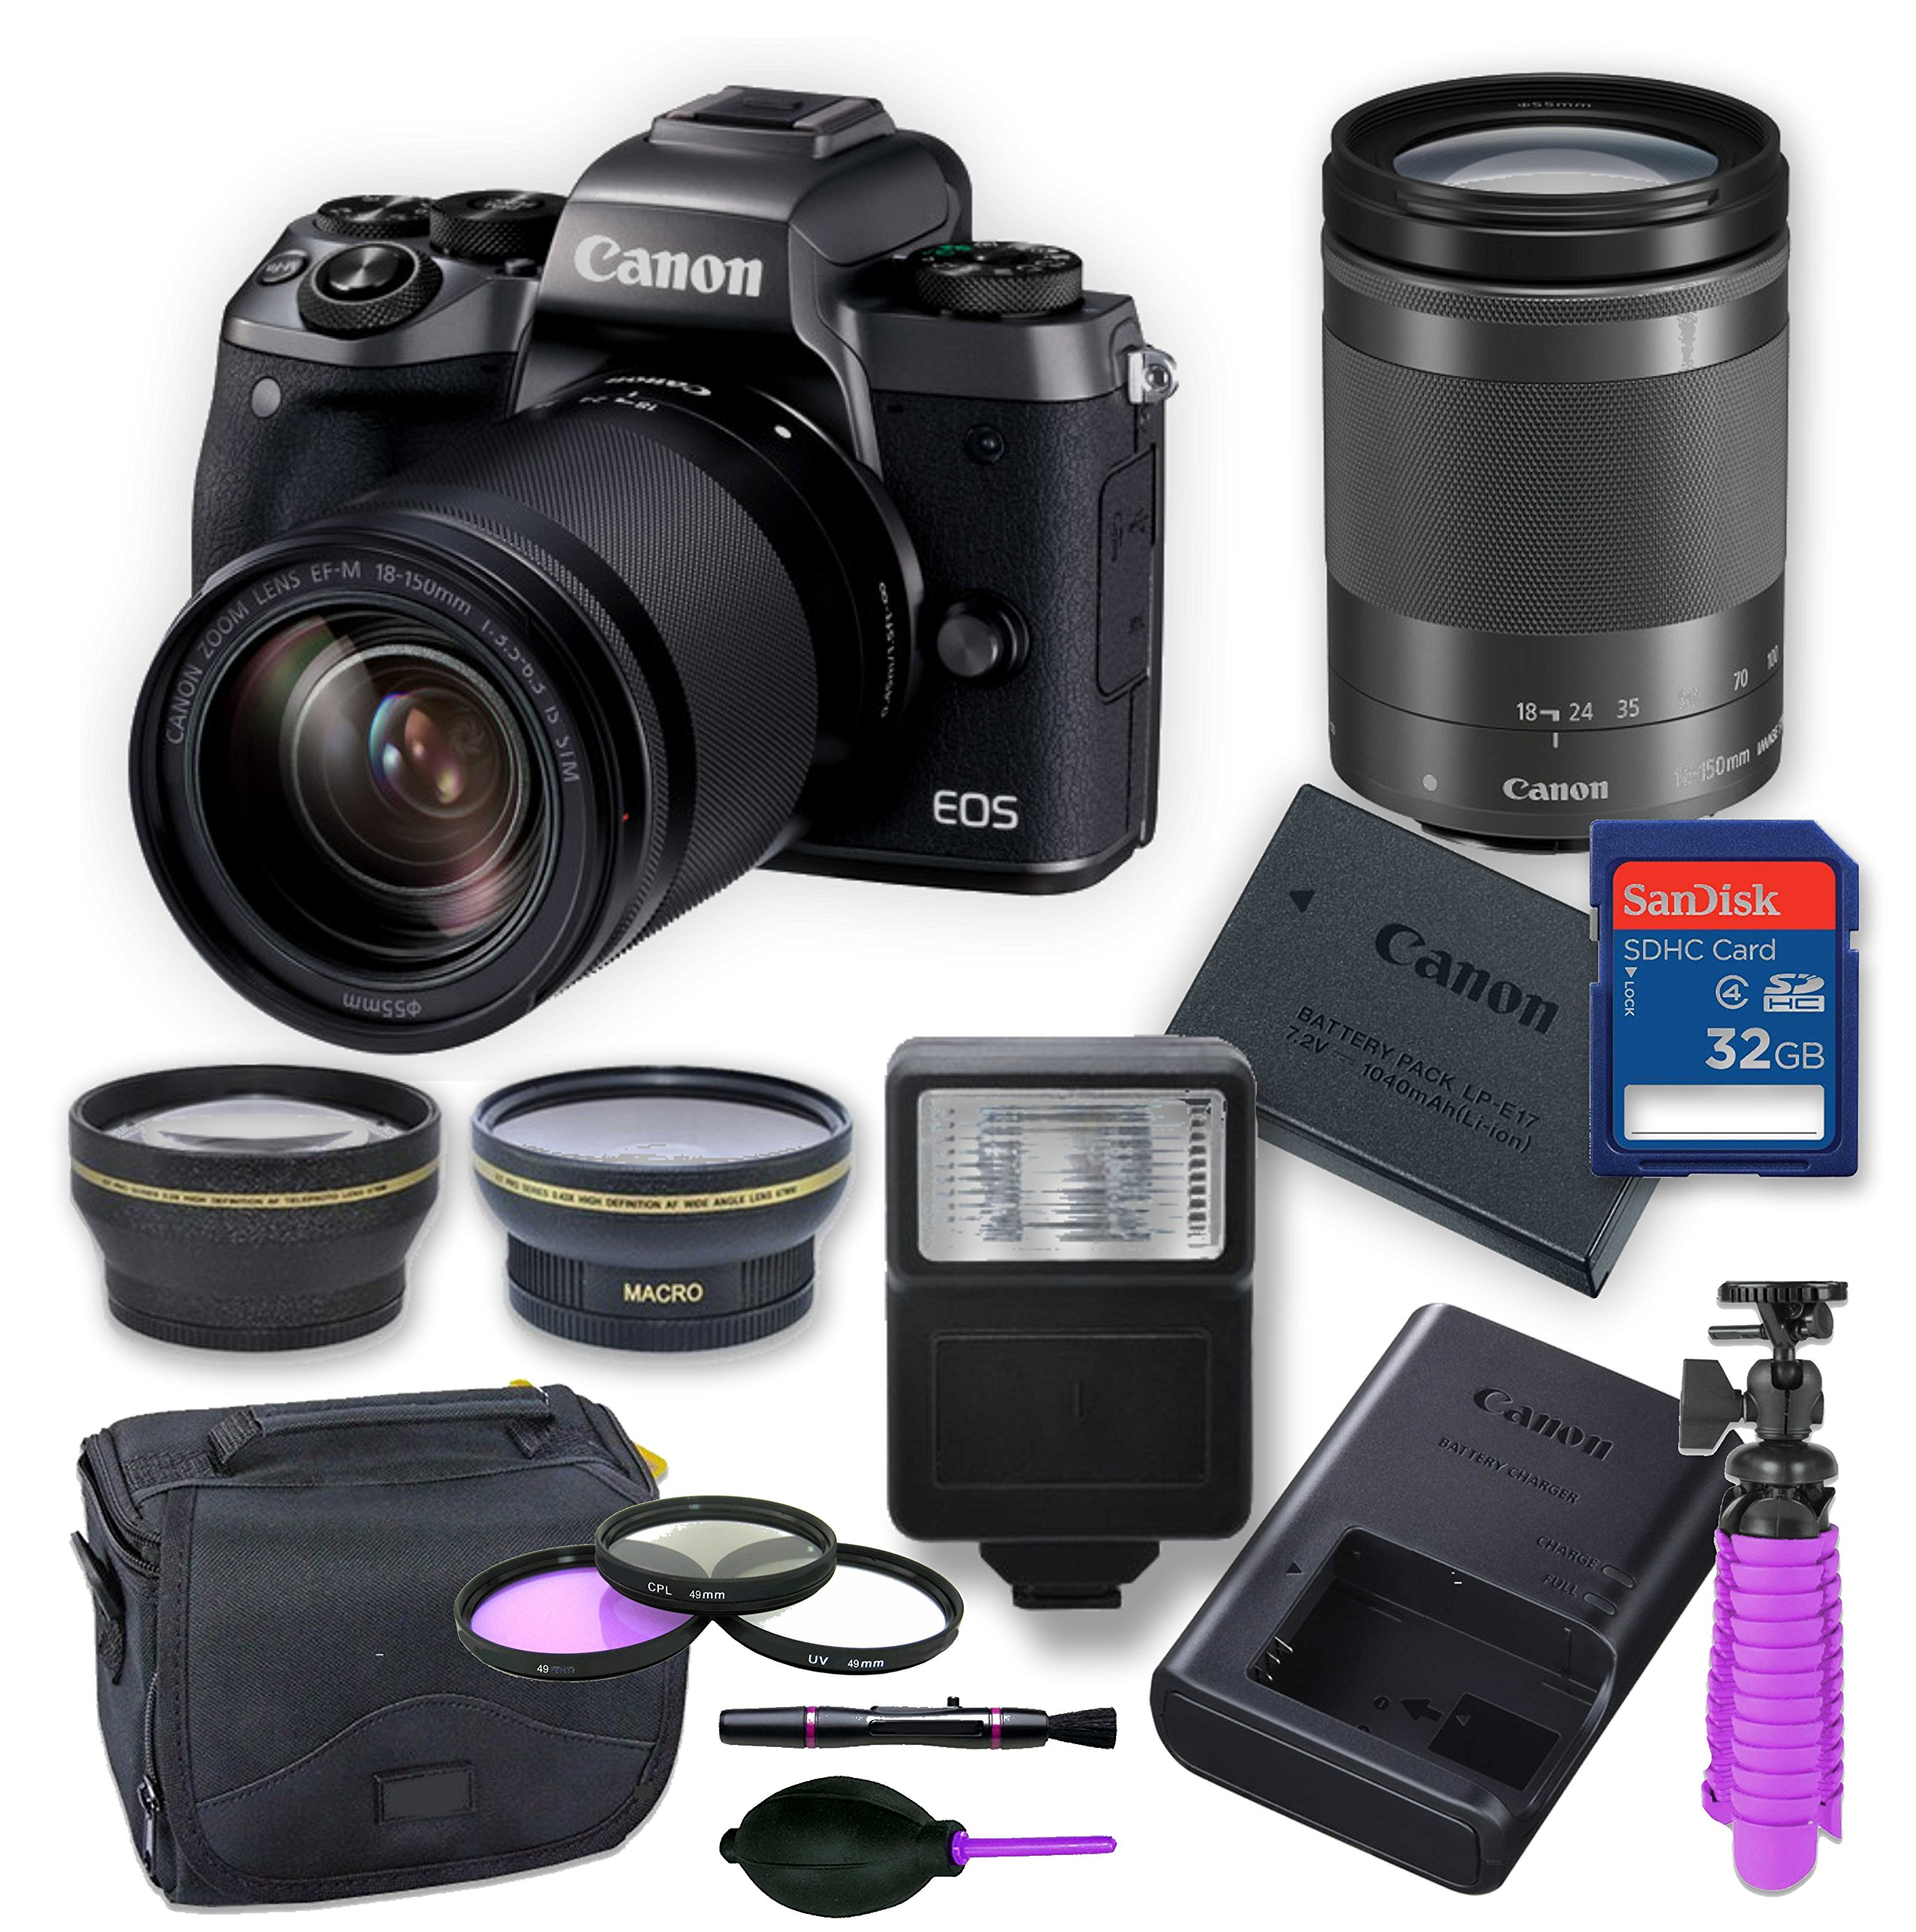 Canon EOS M5 Mirrorless Digital Camera Kit with 18-150 mm Canon Lens + Wide Angle and Telephoto lens, Digital Remote Flash, Canon Battery, 32 gig Memory Card, 3 Filter Kit, Case, Tripod & Cleaning Kit